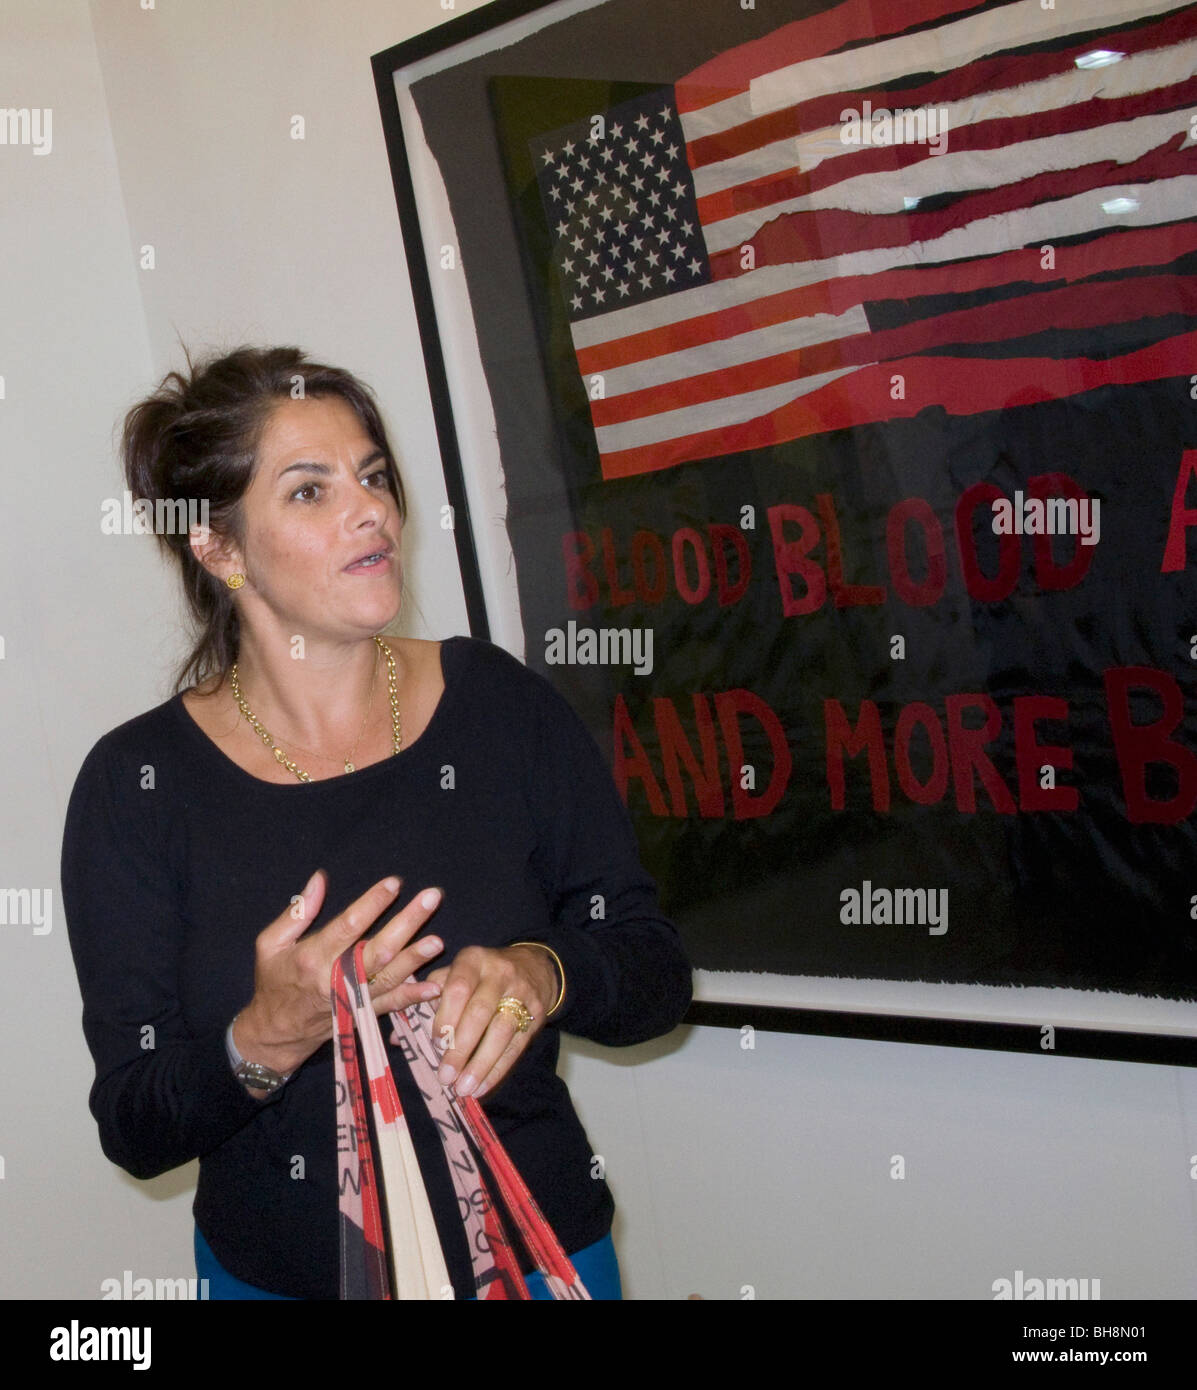 British artist Tracey Amin by her new work depicting war in Iraq, at a show in London - Stock Image